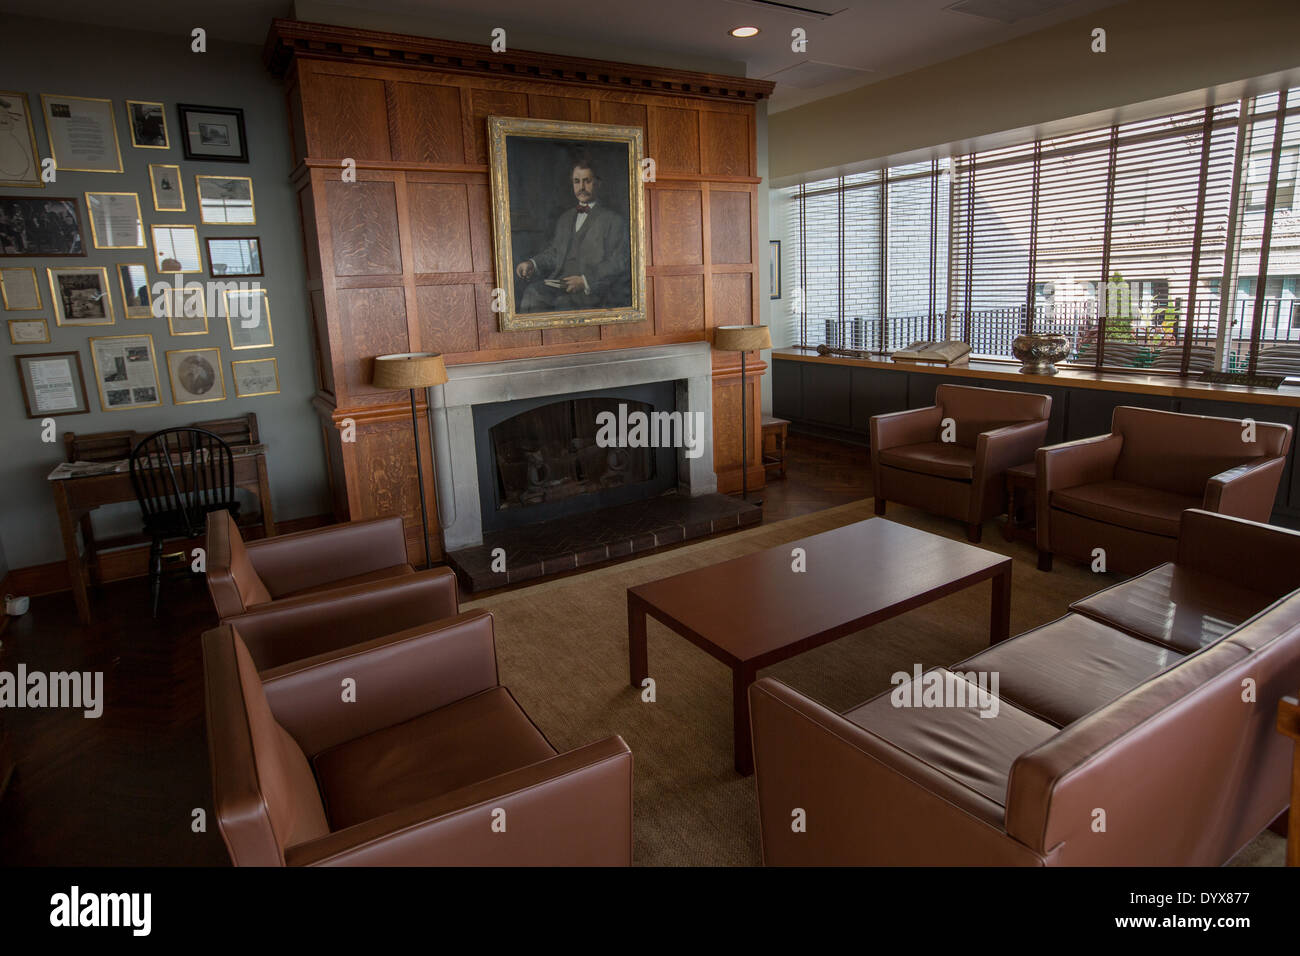 Cliff Dwellers Club interior in Chicago, Illinois USA - Stock Image